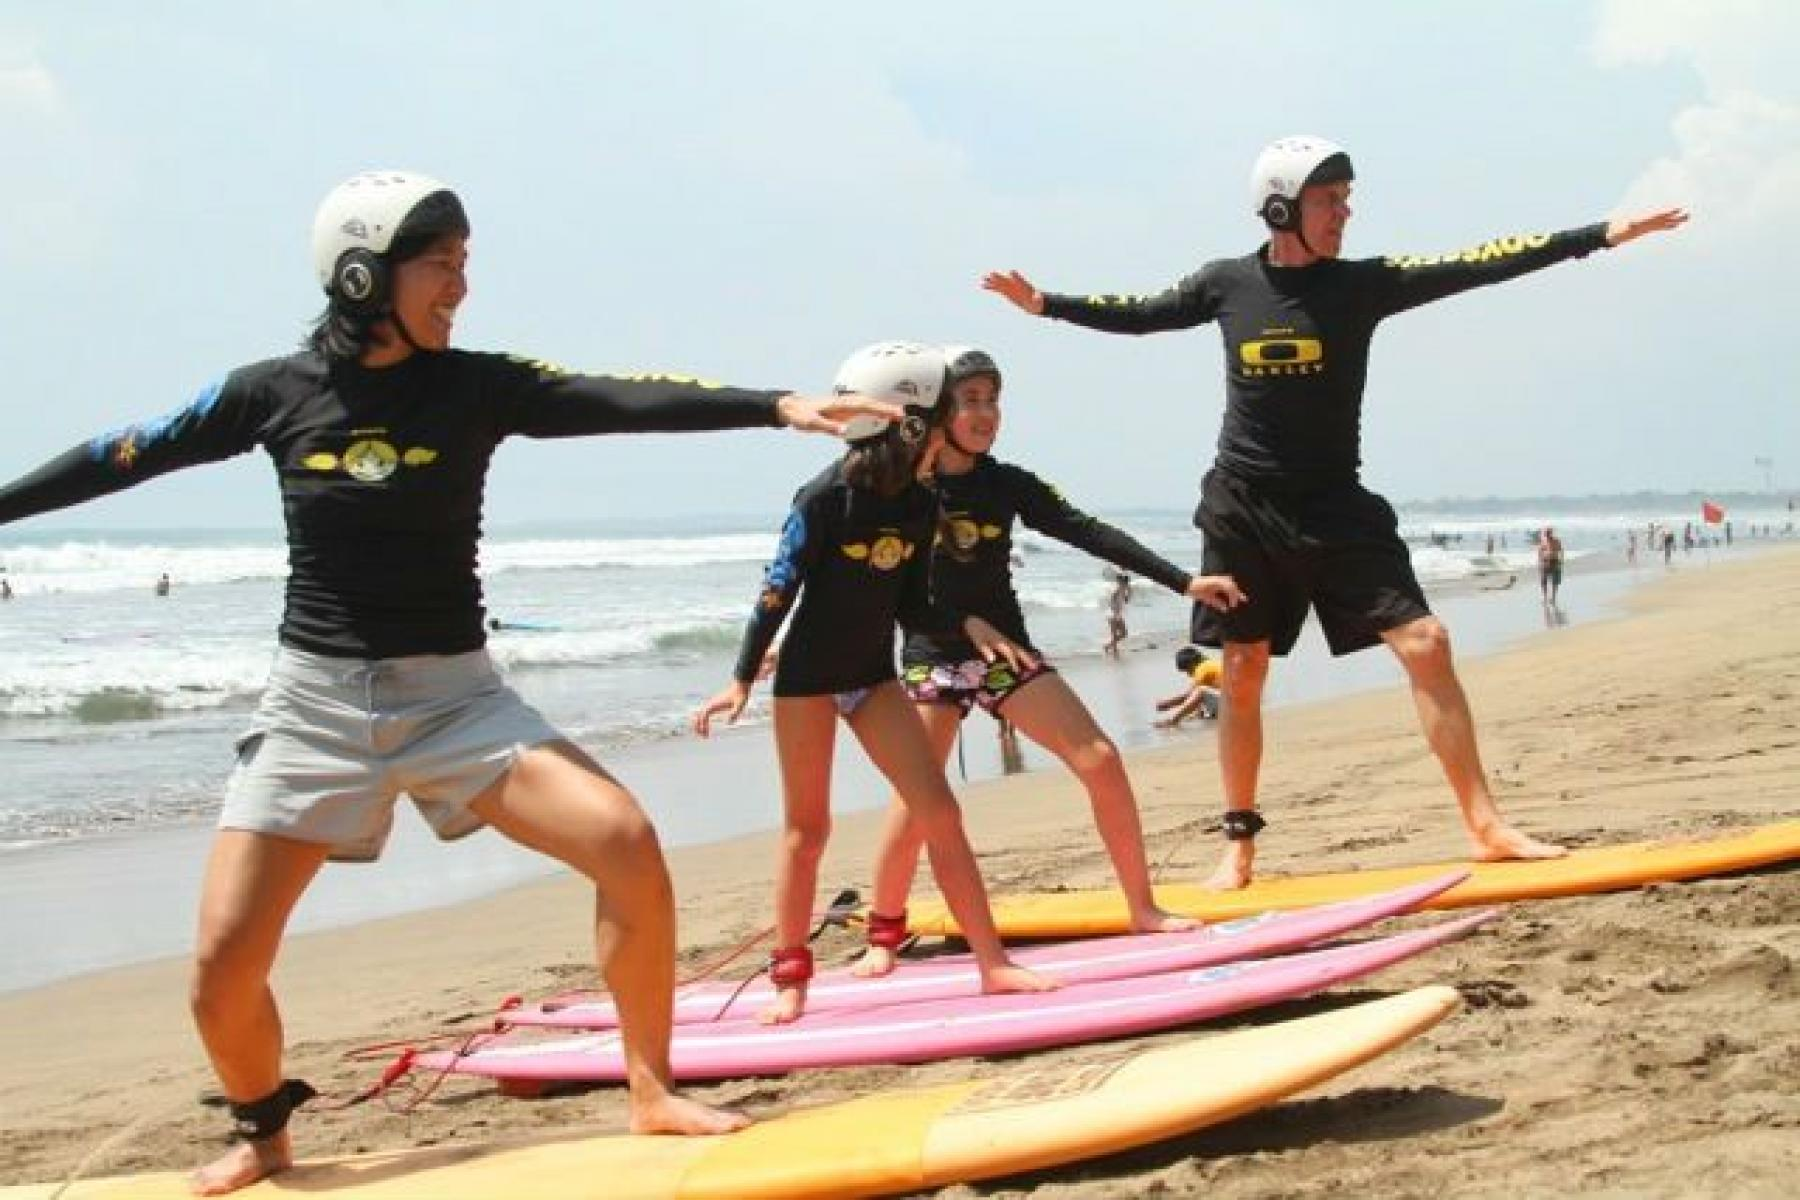 Let's Go Surfin' (Beginners welcome) starting at Desaru Beach Johor Malaysia